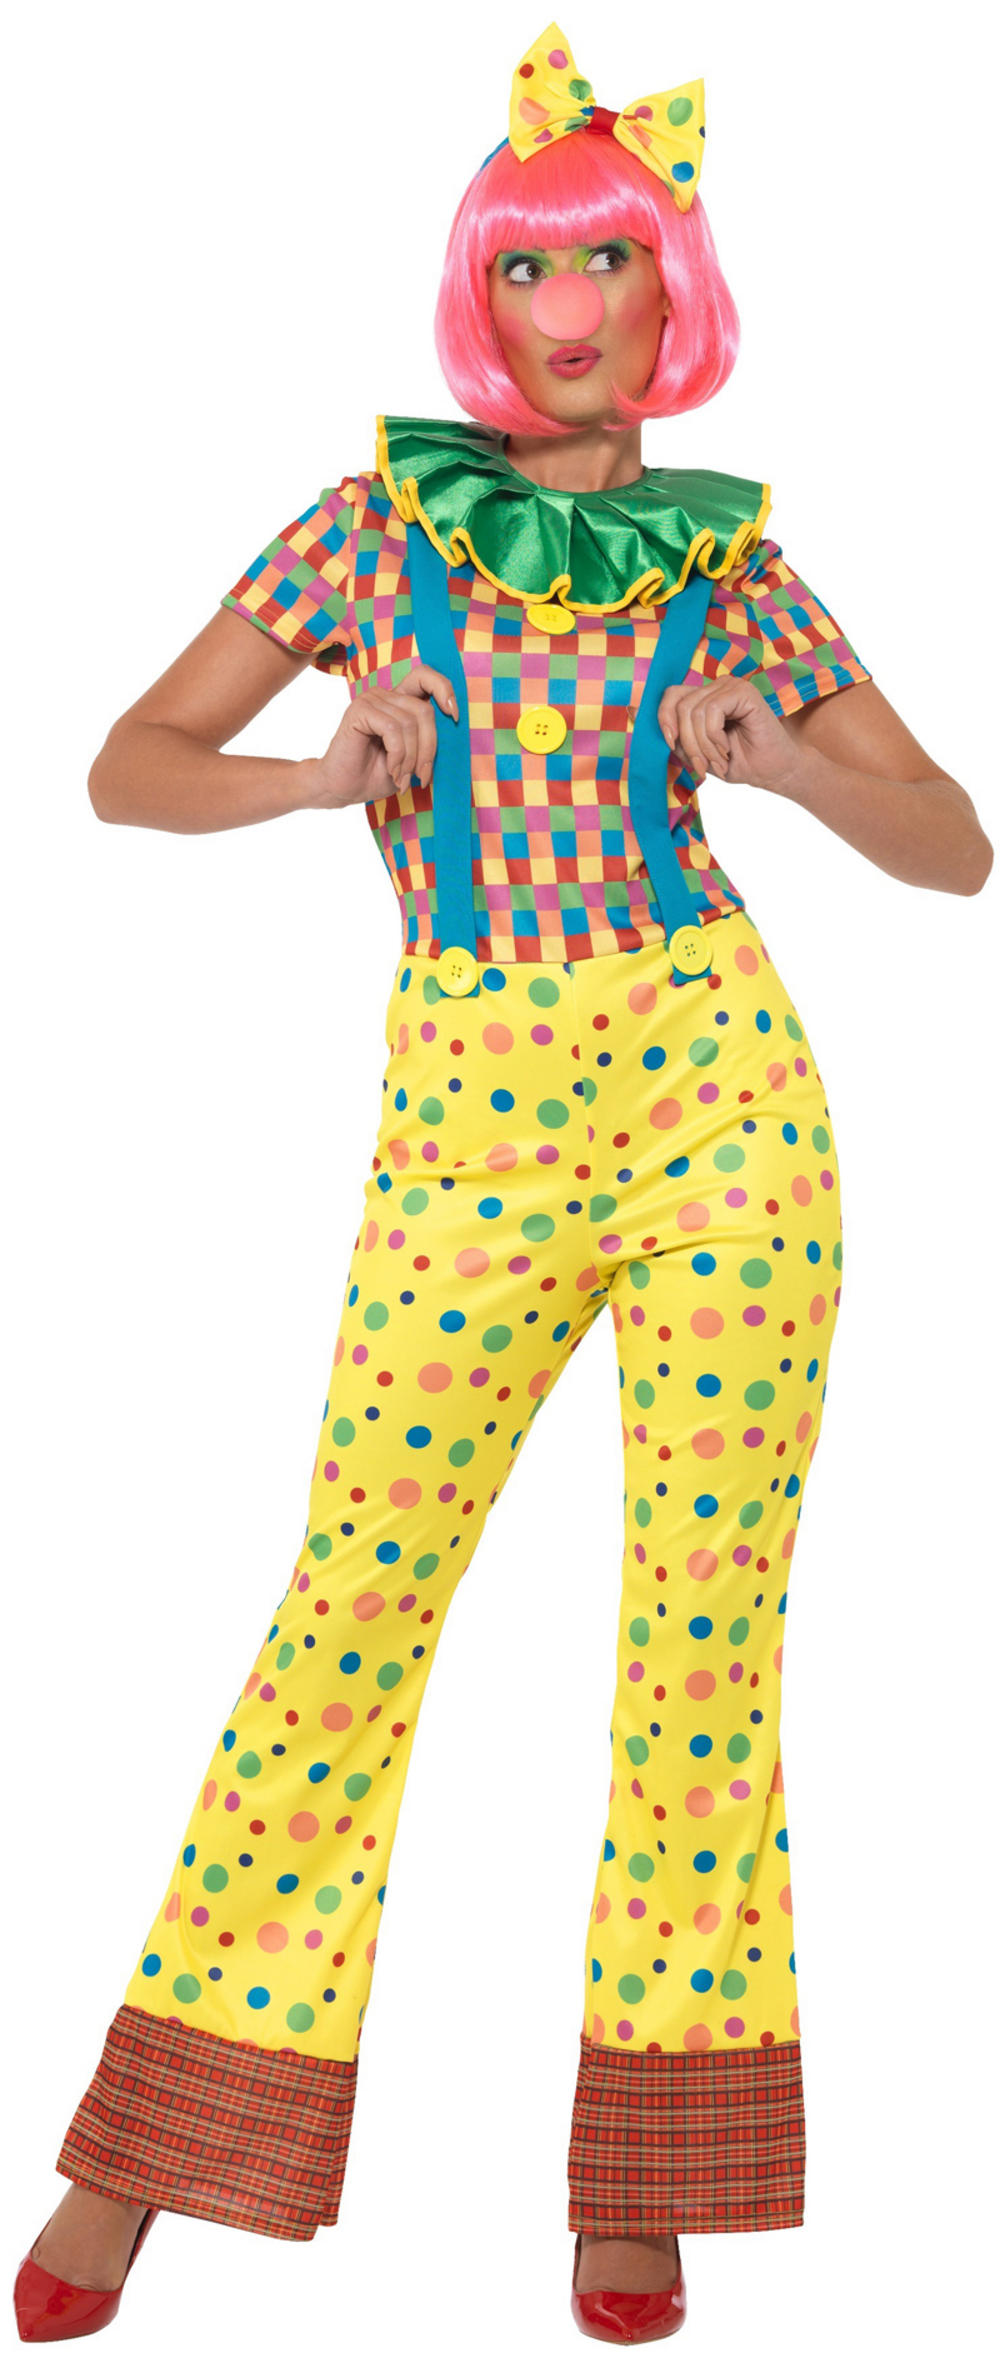 Giggles The Clown Lady Costume